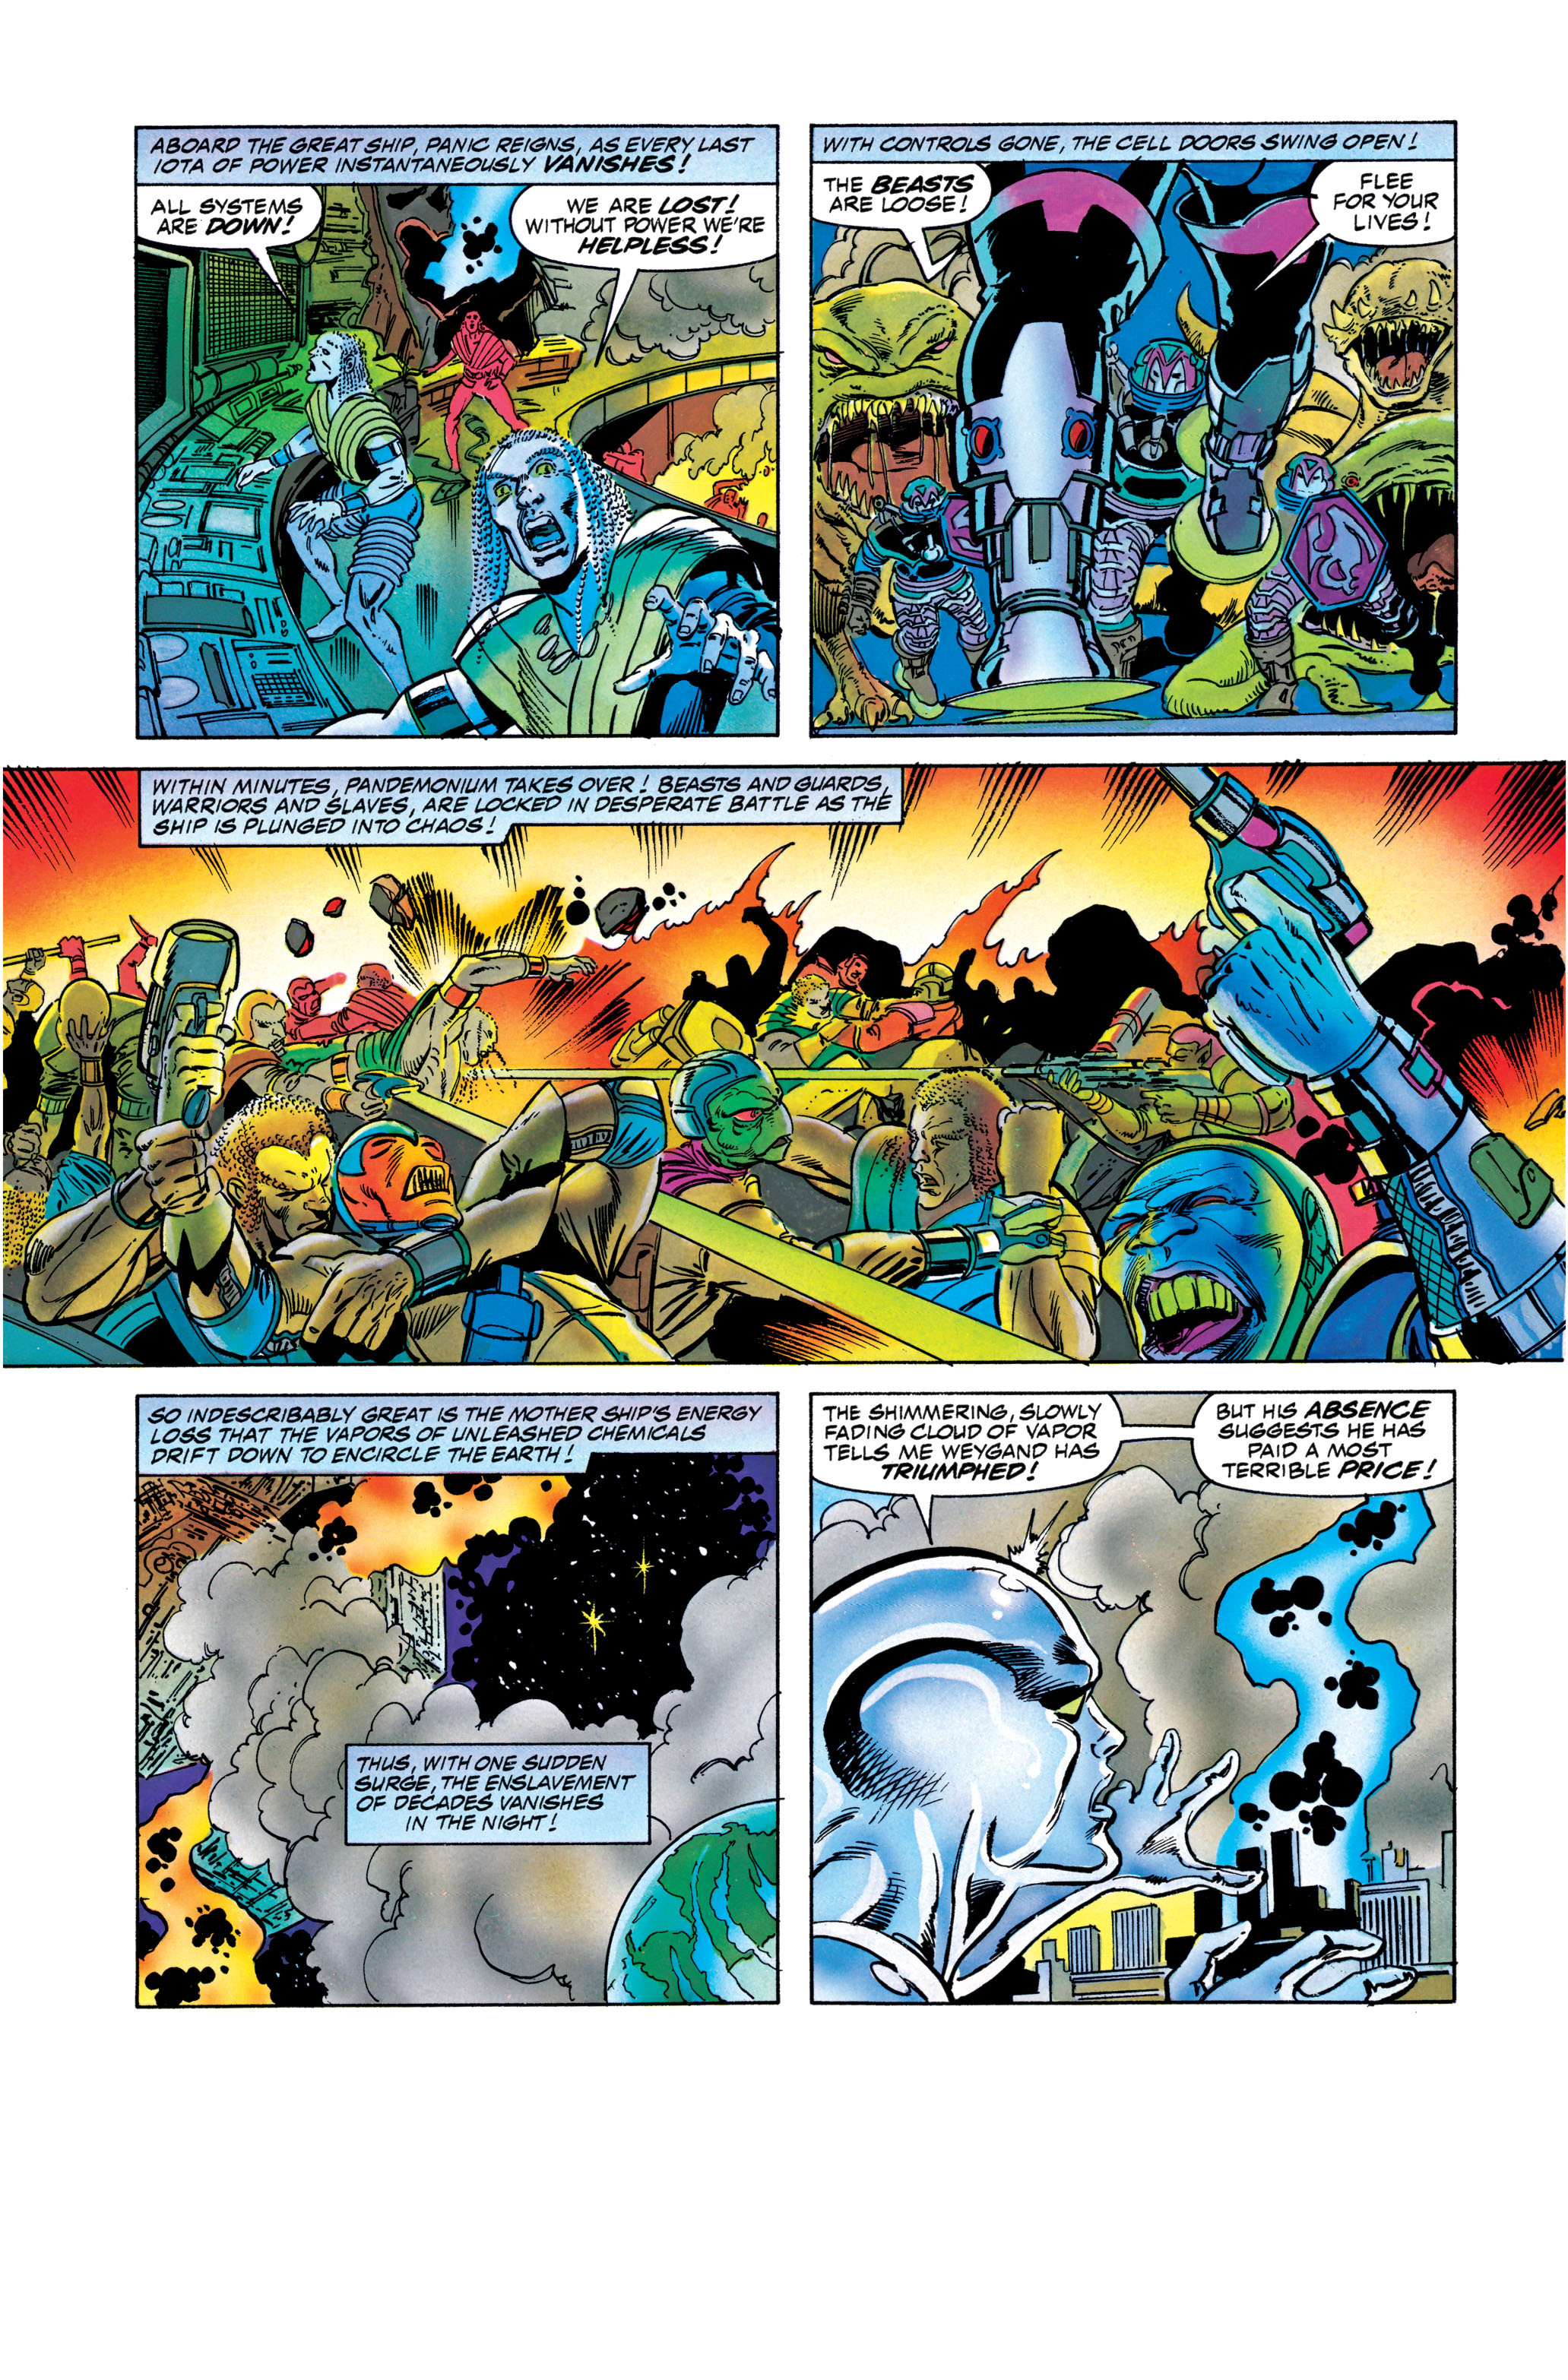 Read online Silver Surfer: Parable comic -  Issue # TPB - 123